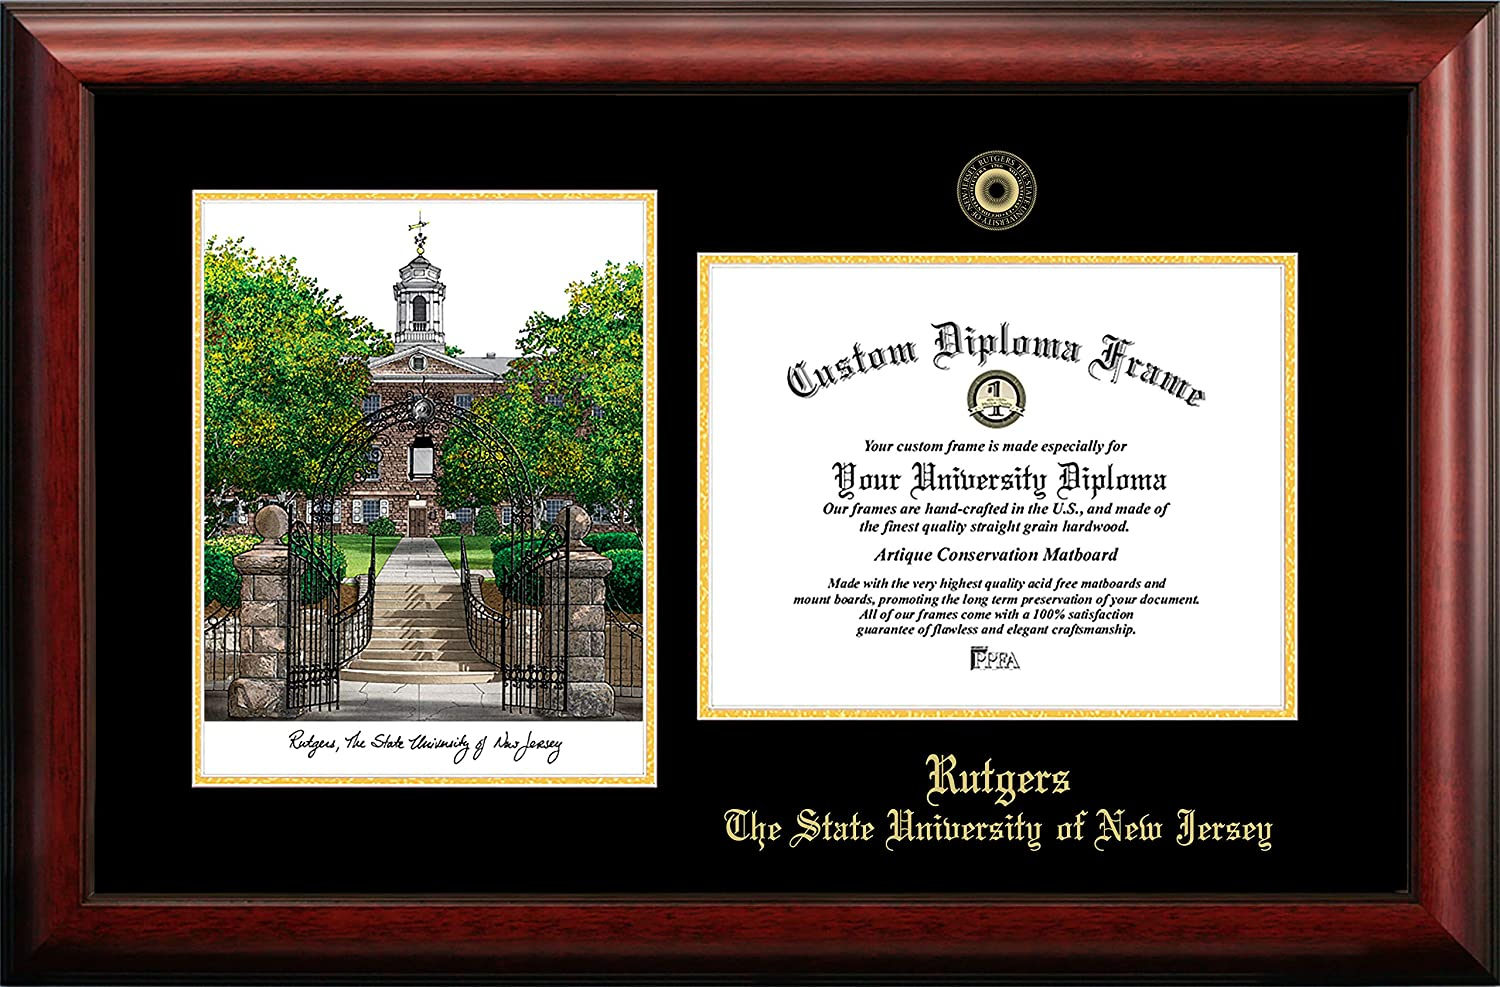 11w x 8.5h Gold Embossed Diploma Frame Lithograph The State University of New Jersey Campus Images Rutgers University